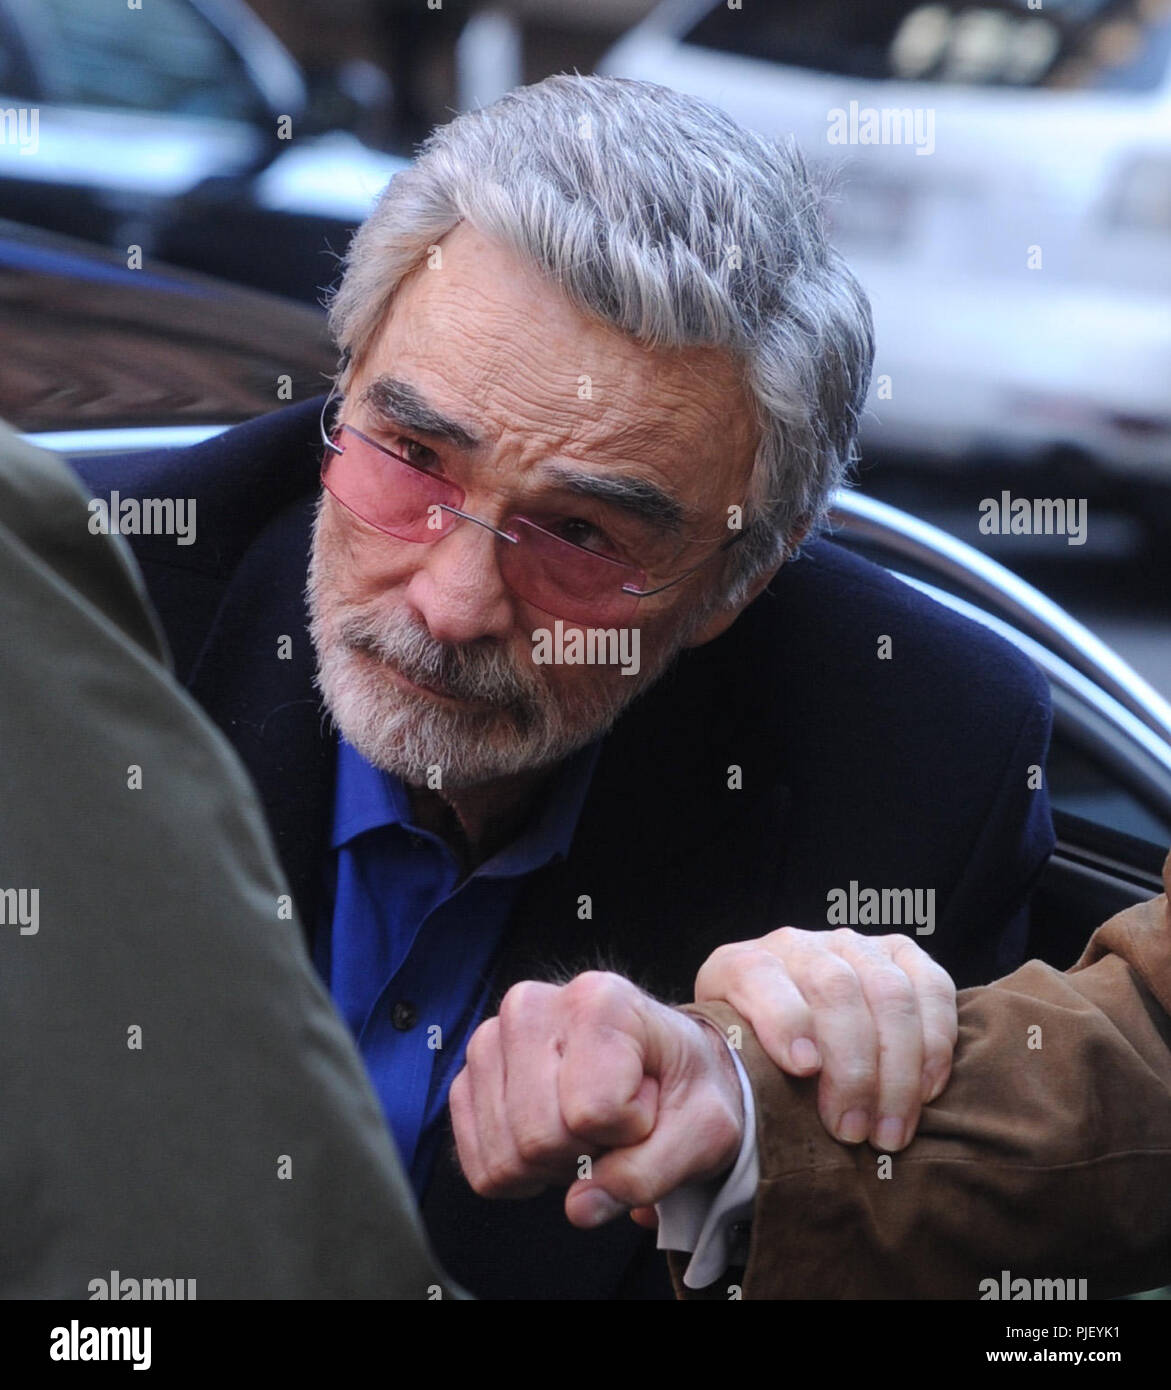 NEW YORK, NY - MARCH 15: Burt Reynolds leaves Build at Build Studio on March 15, 2018 in New York City.    People:  Burt Reynolds - Stock Image